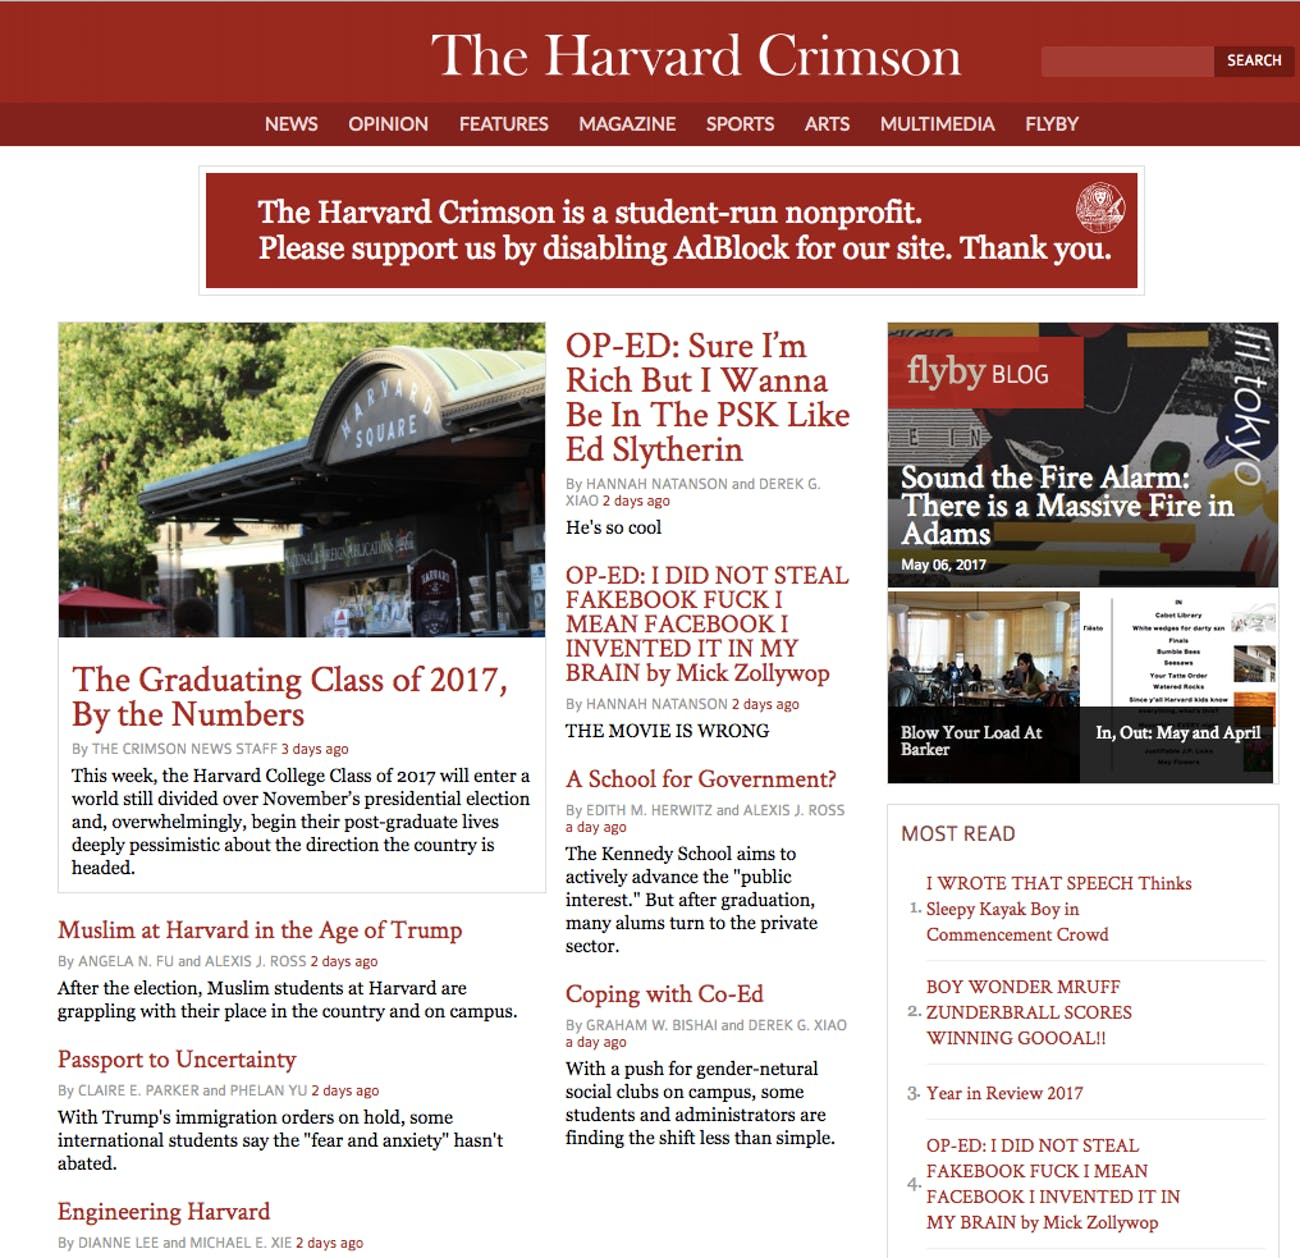 Harvard Crimson website hacked to troll Mark Zuckerberg before commencement speech.